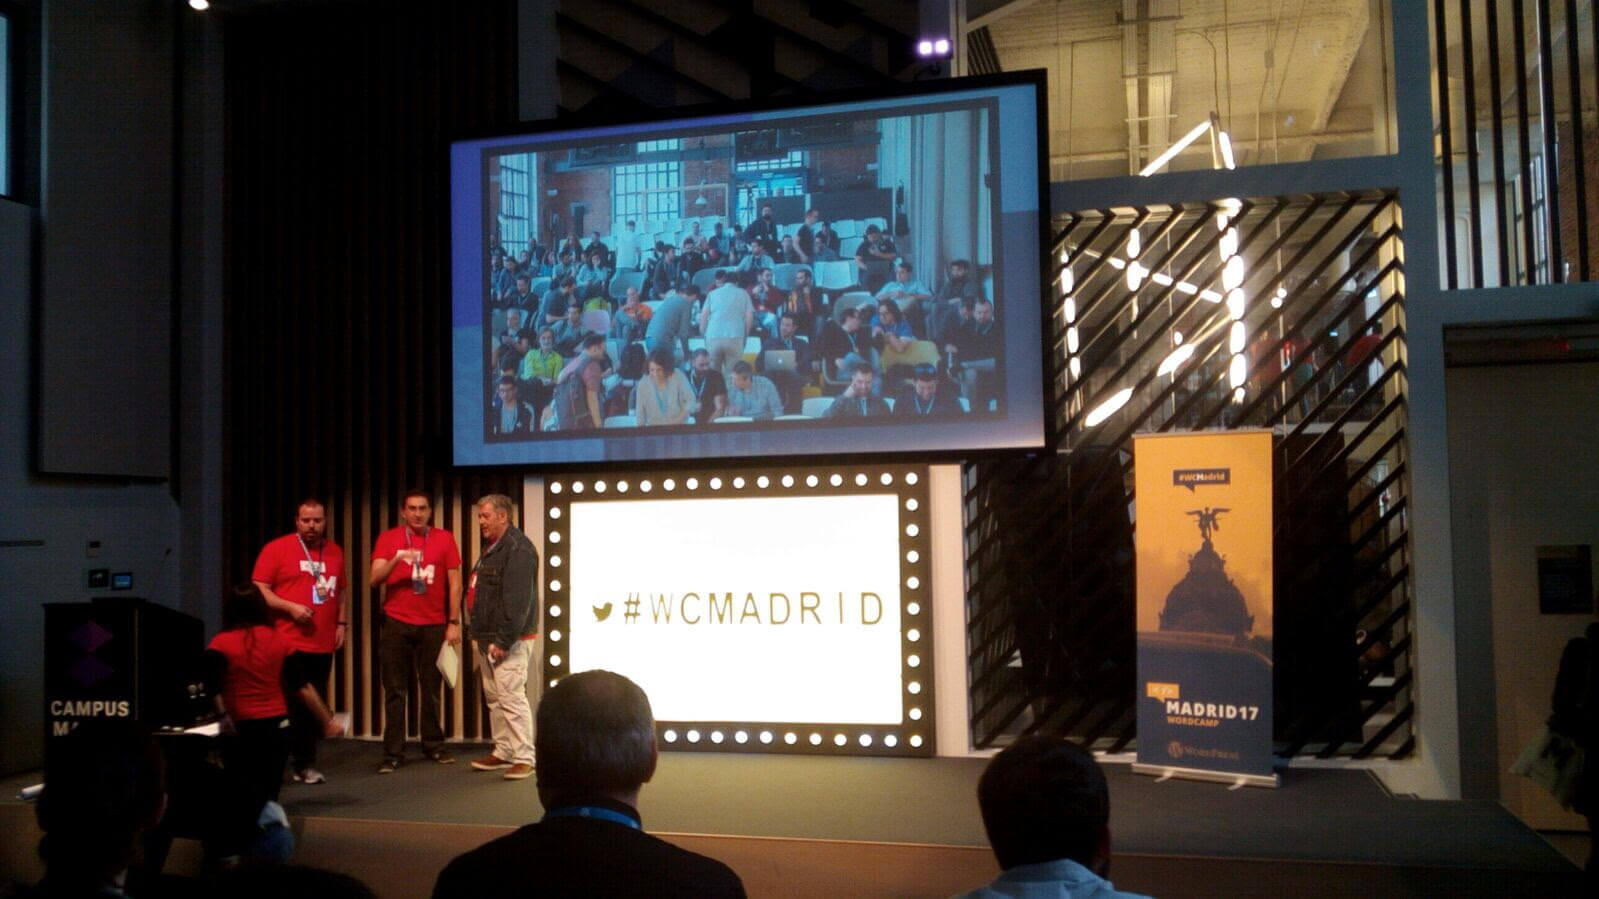 Ponencia WordCamp 2017 Madrid